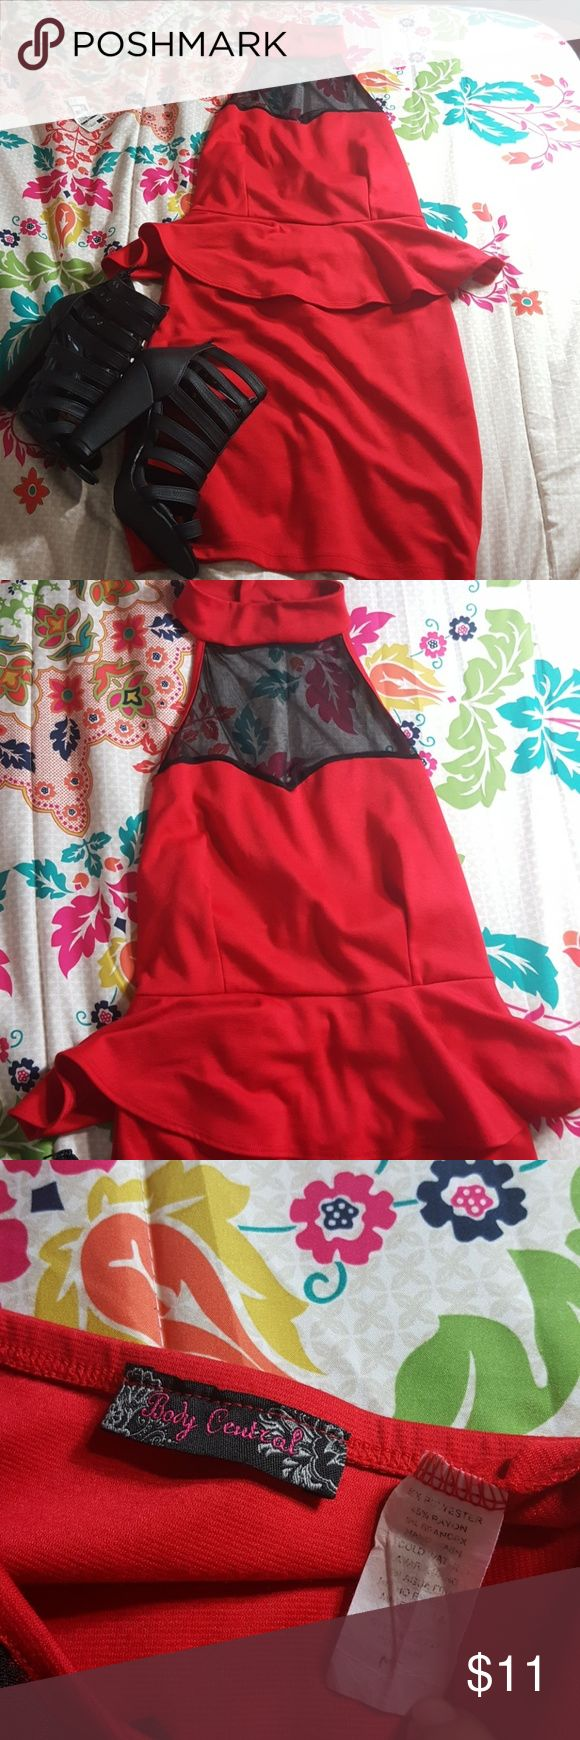 Body Central Dress Brand: Body Central Size: M Color: Red Style: Choker Mesh Peplum Dress  !*!* Black Strappy Pumps Not Included !*!*  Buyers can expect: Careful packaging, Fast shipping, & Delivery confirmation with each item purchased! PET FREE HOME & SMOKE-FREE HOME. Body Central Dresses Midi